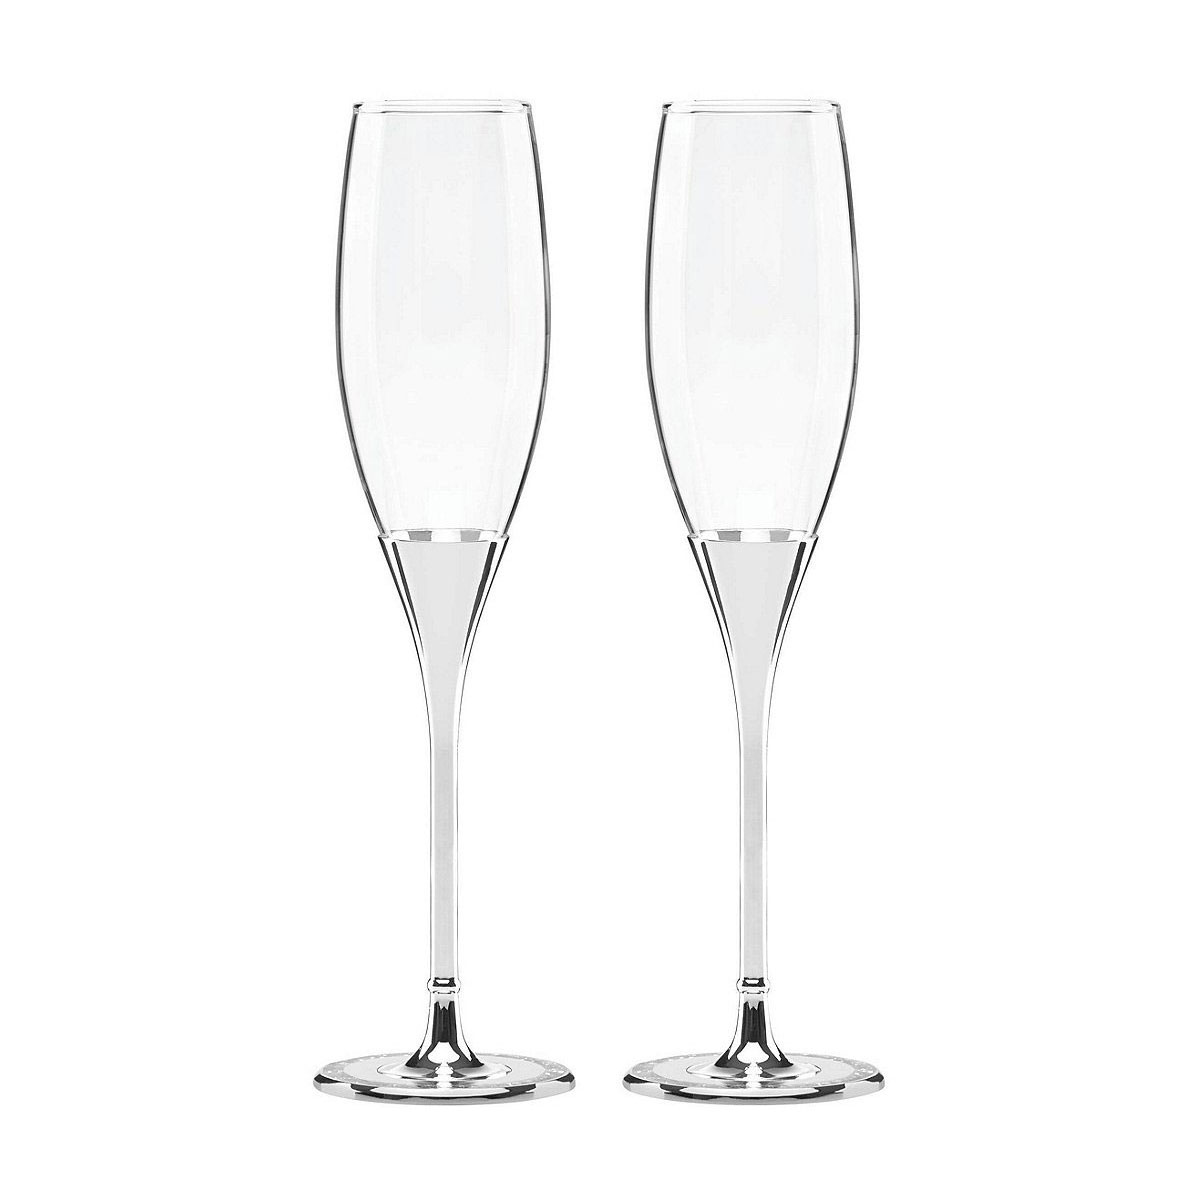 Kate Spade New York, Lenox Simply Sparkling Silver Champagne Crystal Flutes, Pair